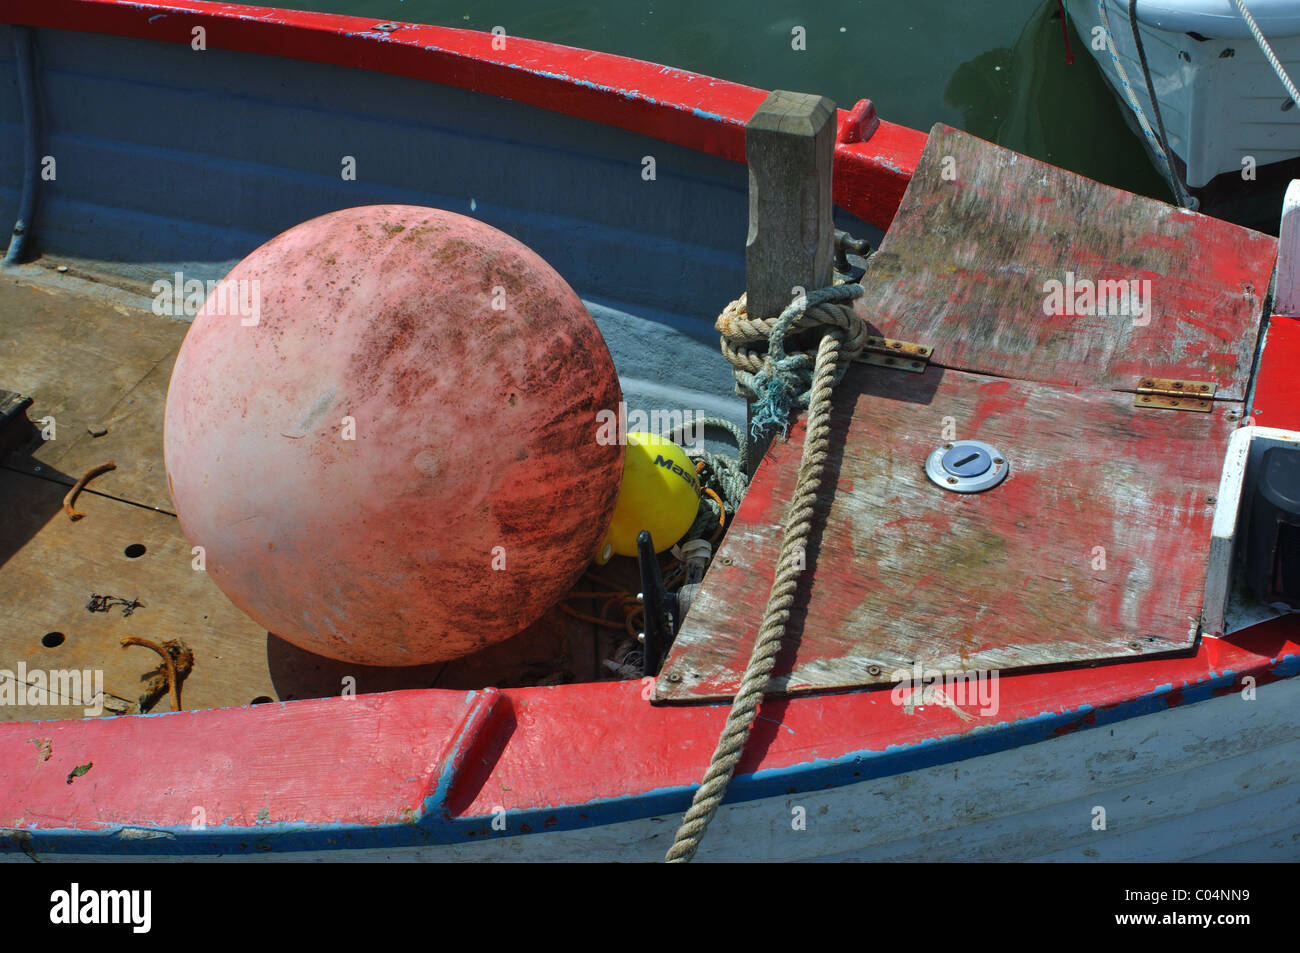 Mooring bouy on boat, river teifi, st dogmaels, pembrokeshire, wales - Stock Image